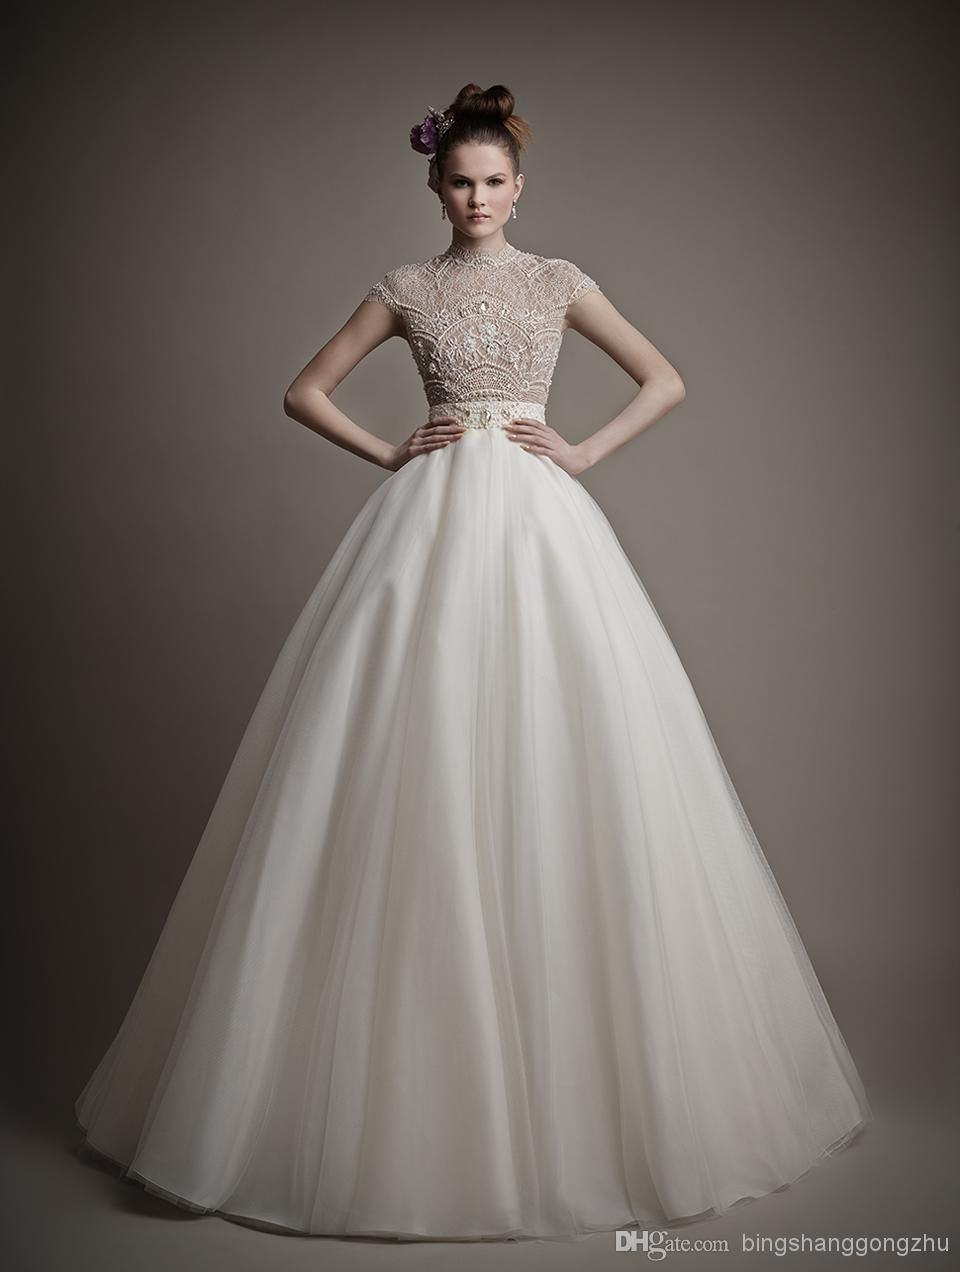 Discount gorgeous ball gown wedding dress high neck cap sleeves